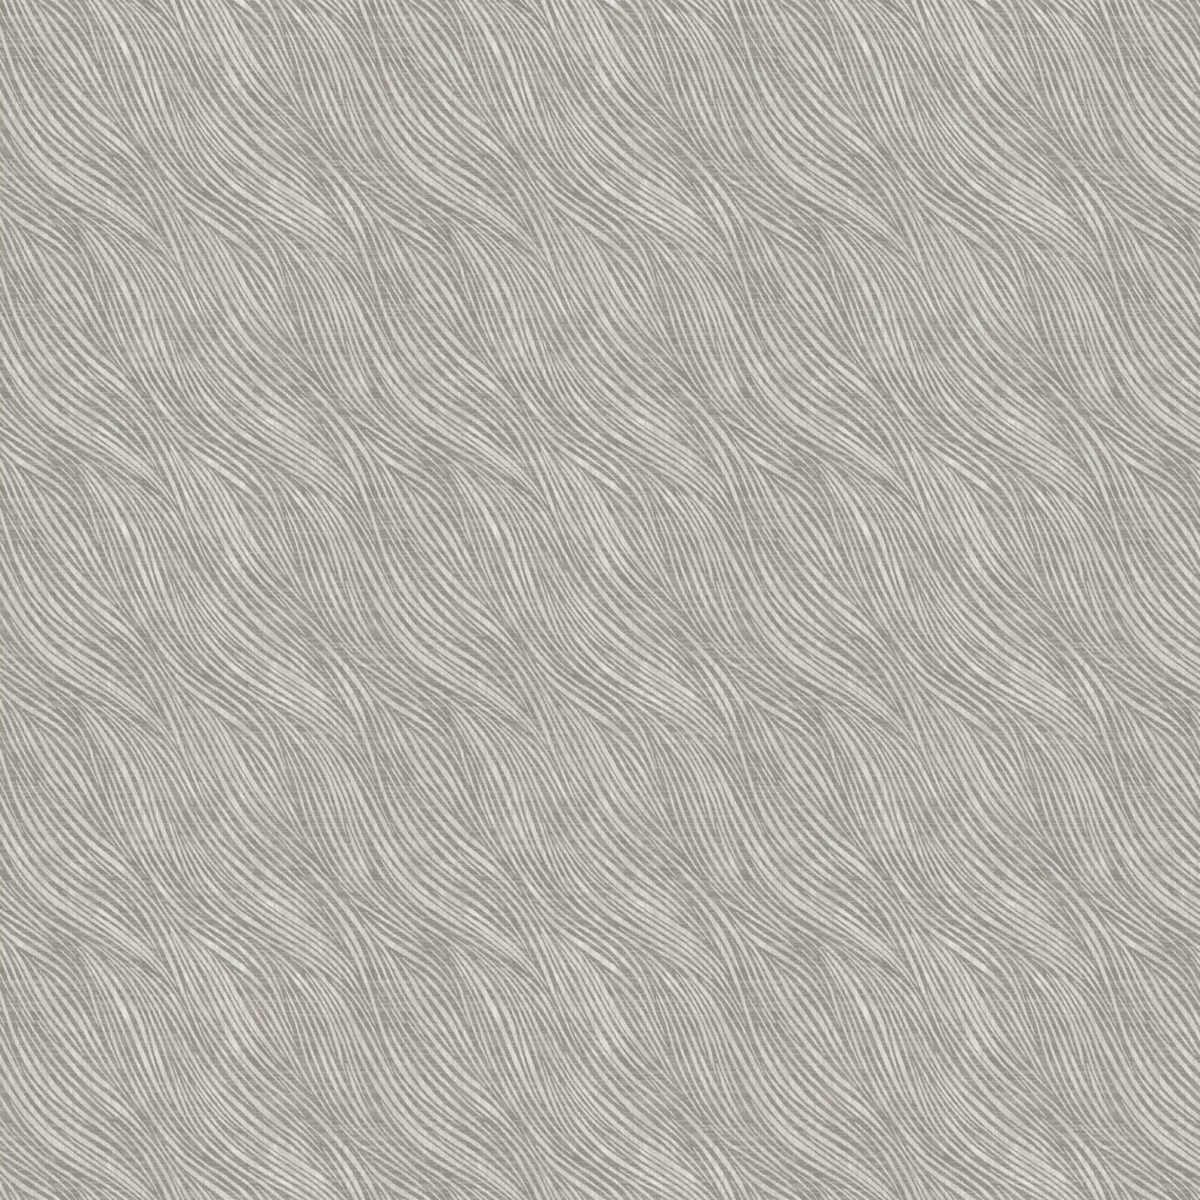 Serenity Lined Waves -Grey